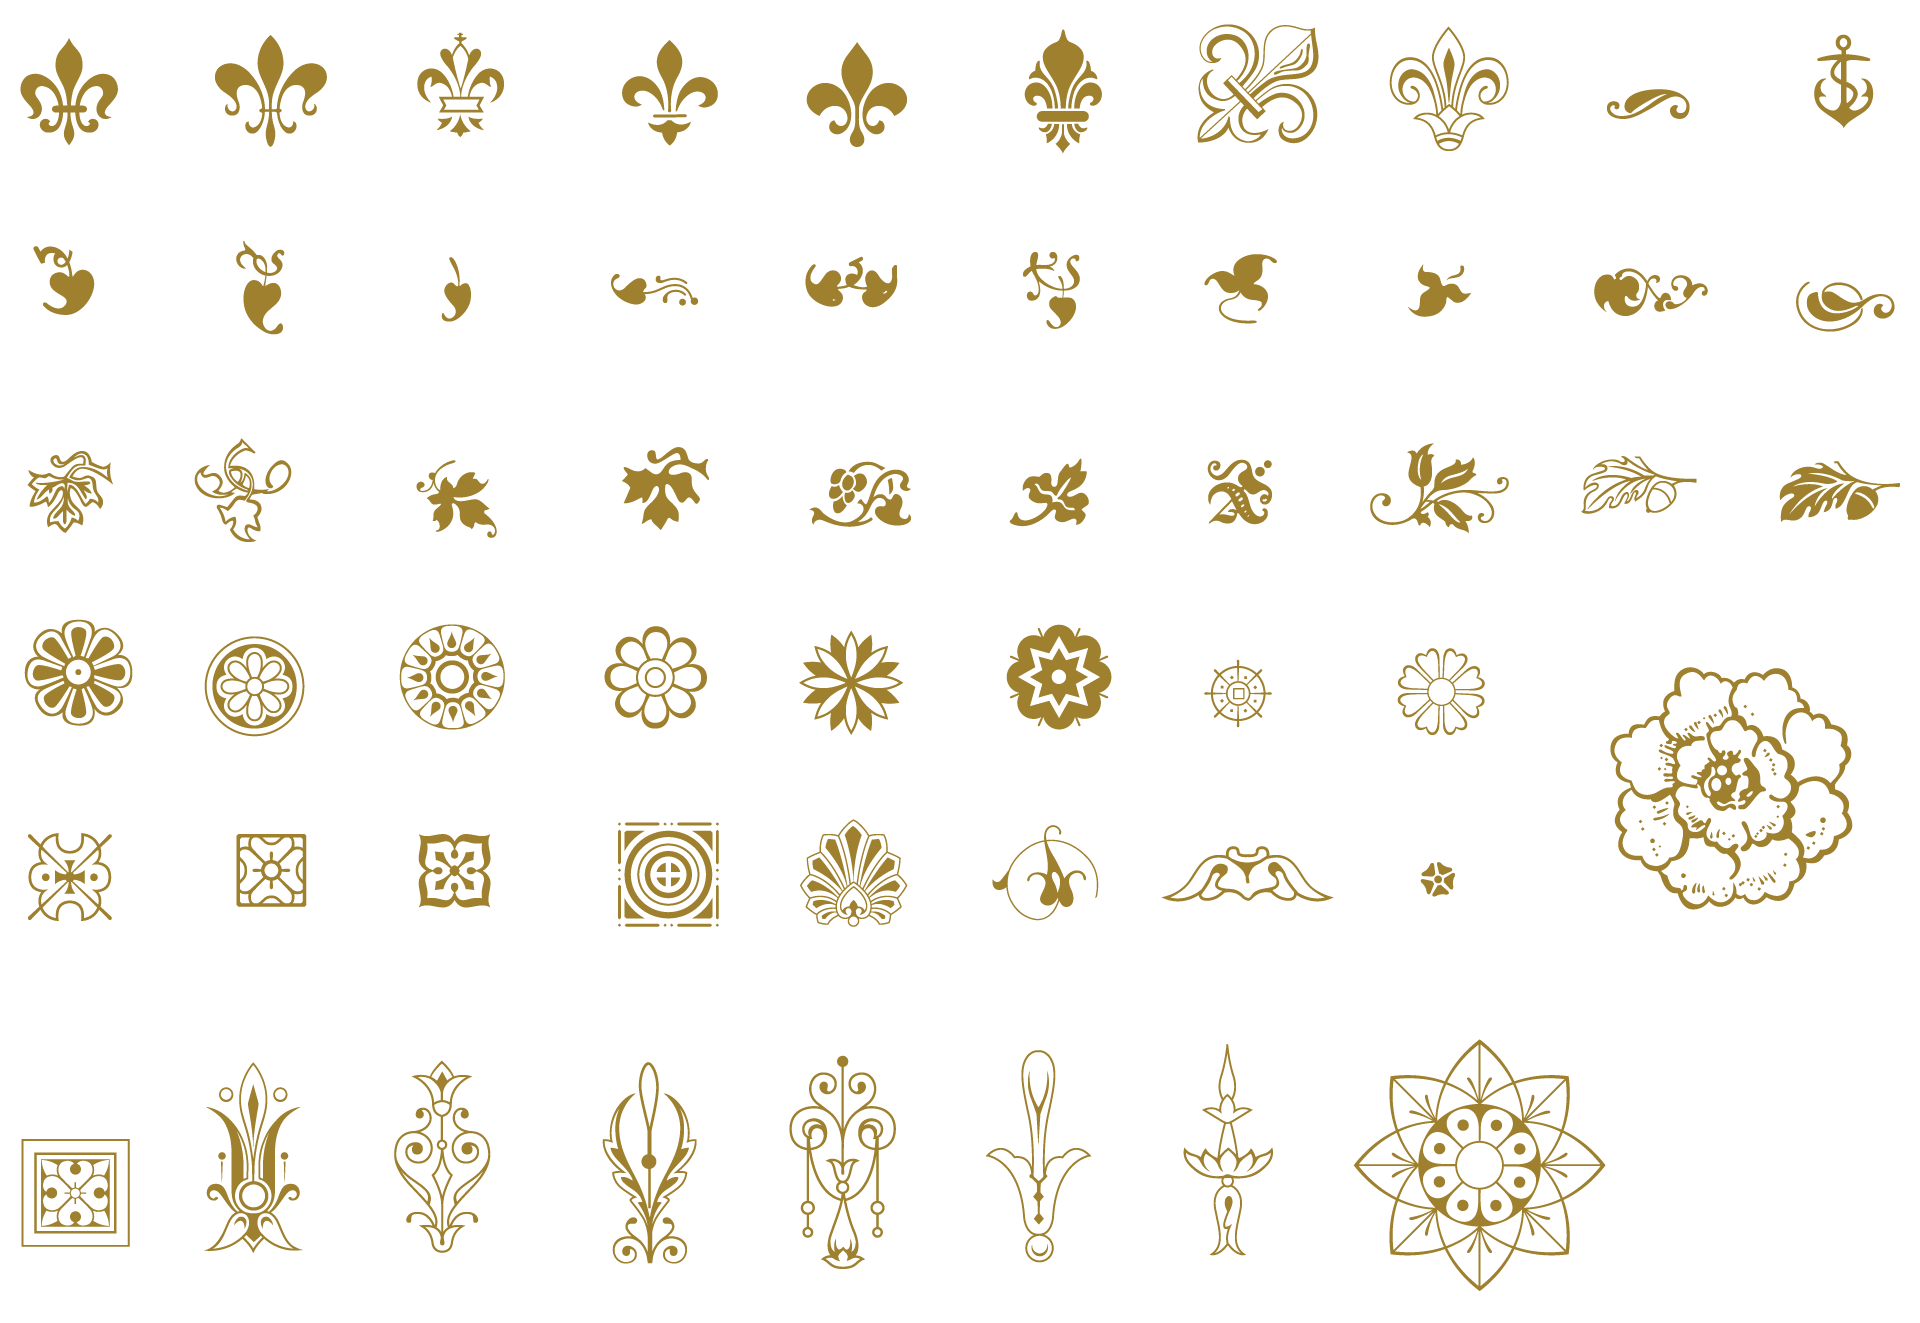 Snowflake picture frame clipart with hole in middle image library download Essential Vintage Vector Pack - 930 vector ornaments, 465 decorative ... image library download